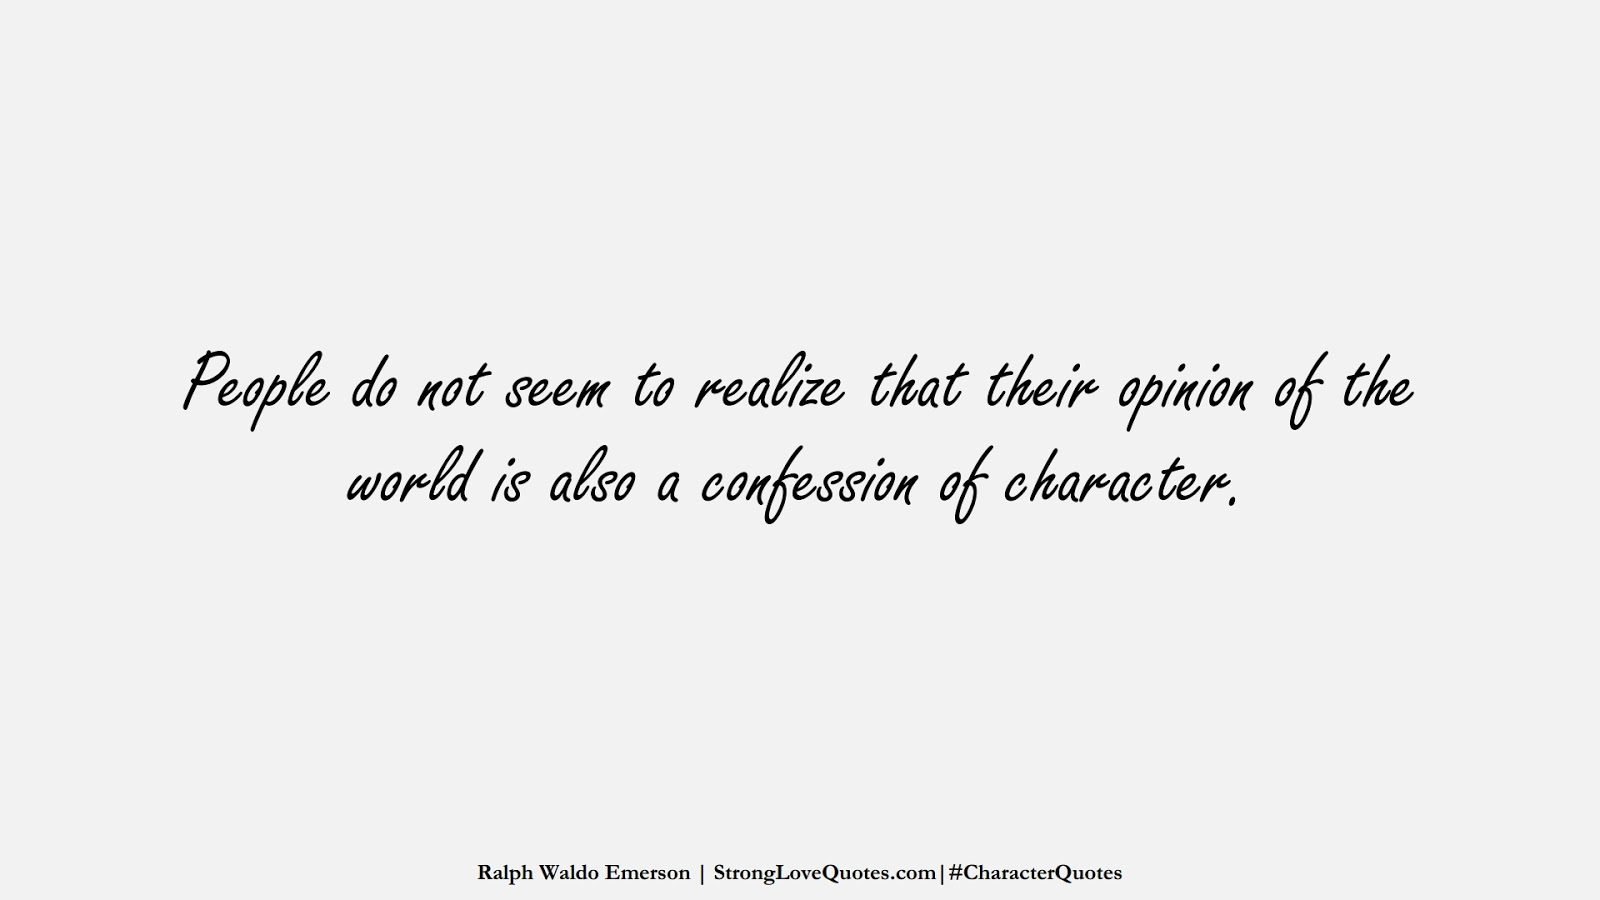 People do not seem to realize that their opinion of the world is also a confession of character. (Ralph Waldo Emerson);  #CharacterQuotes